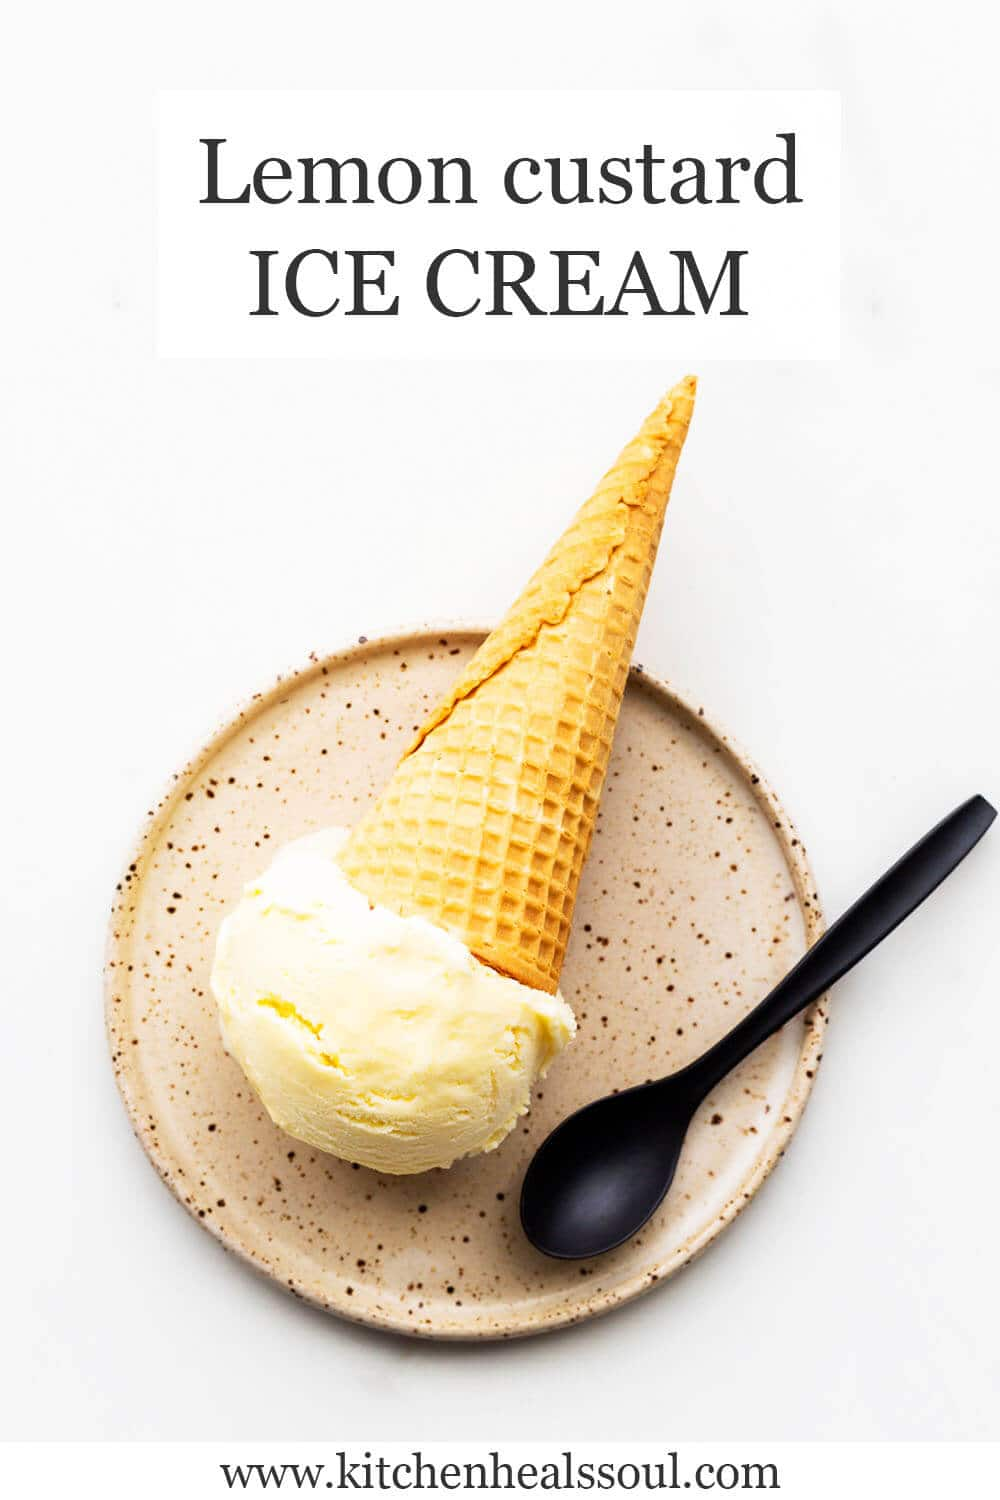 Lemon custard ice cream in a cone served on a ceramic plate with a black spoon